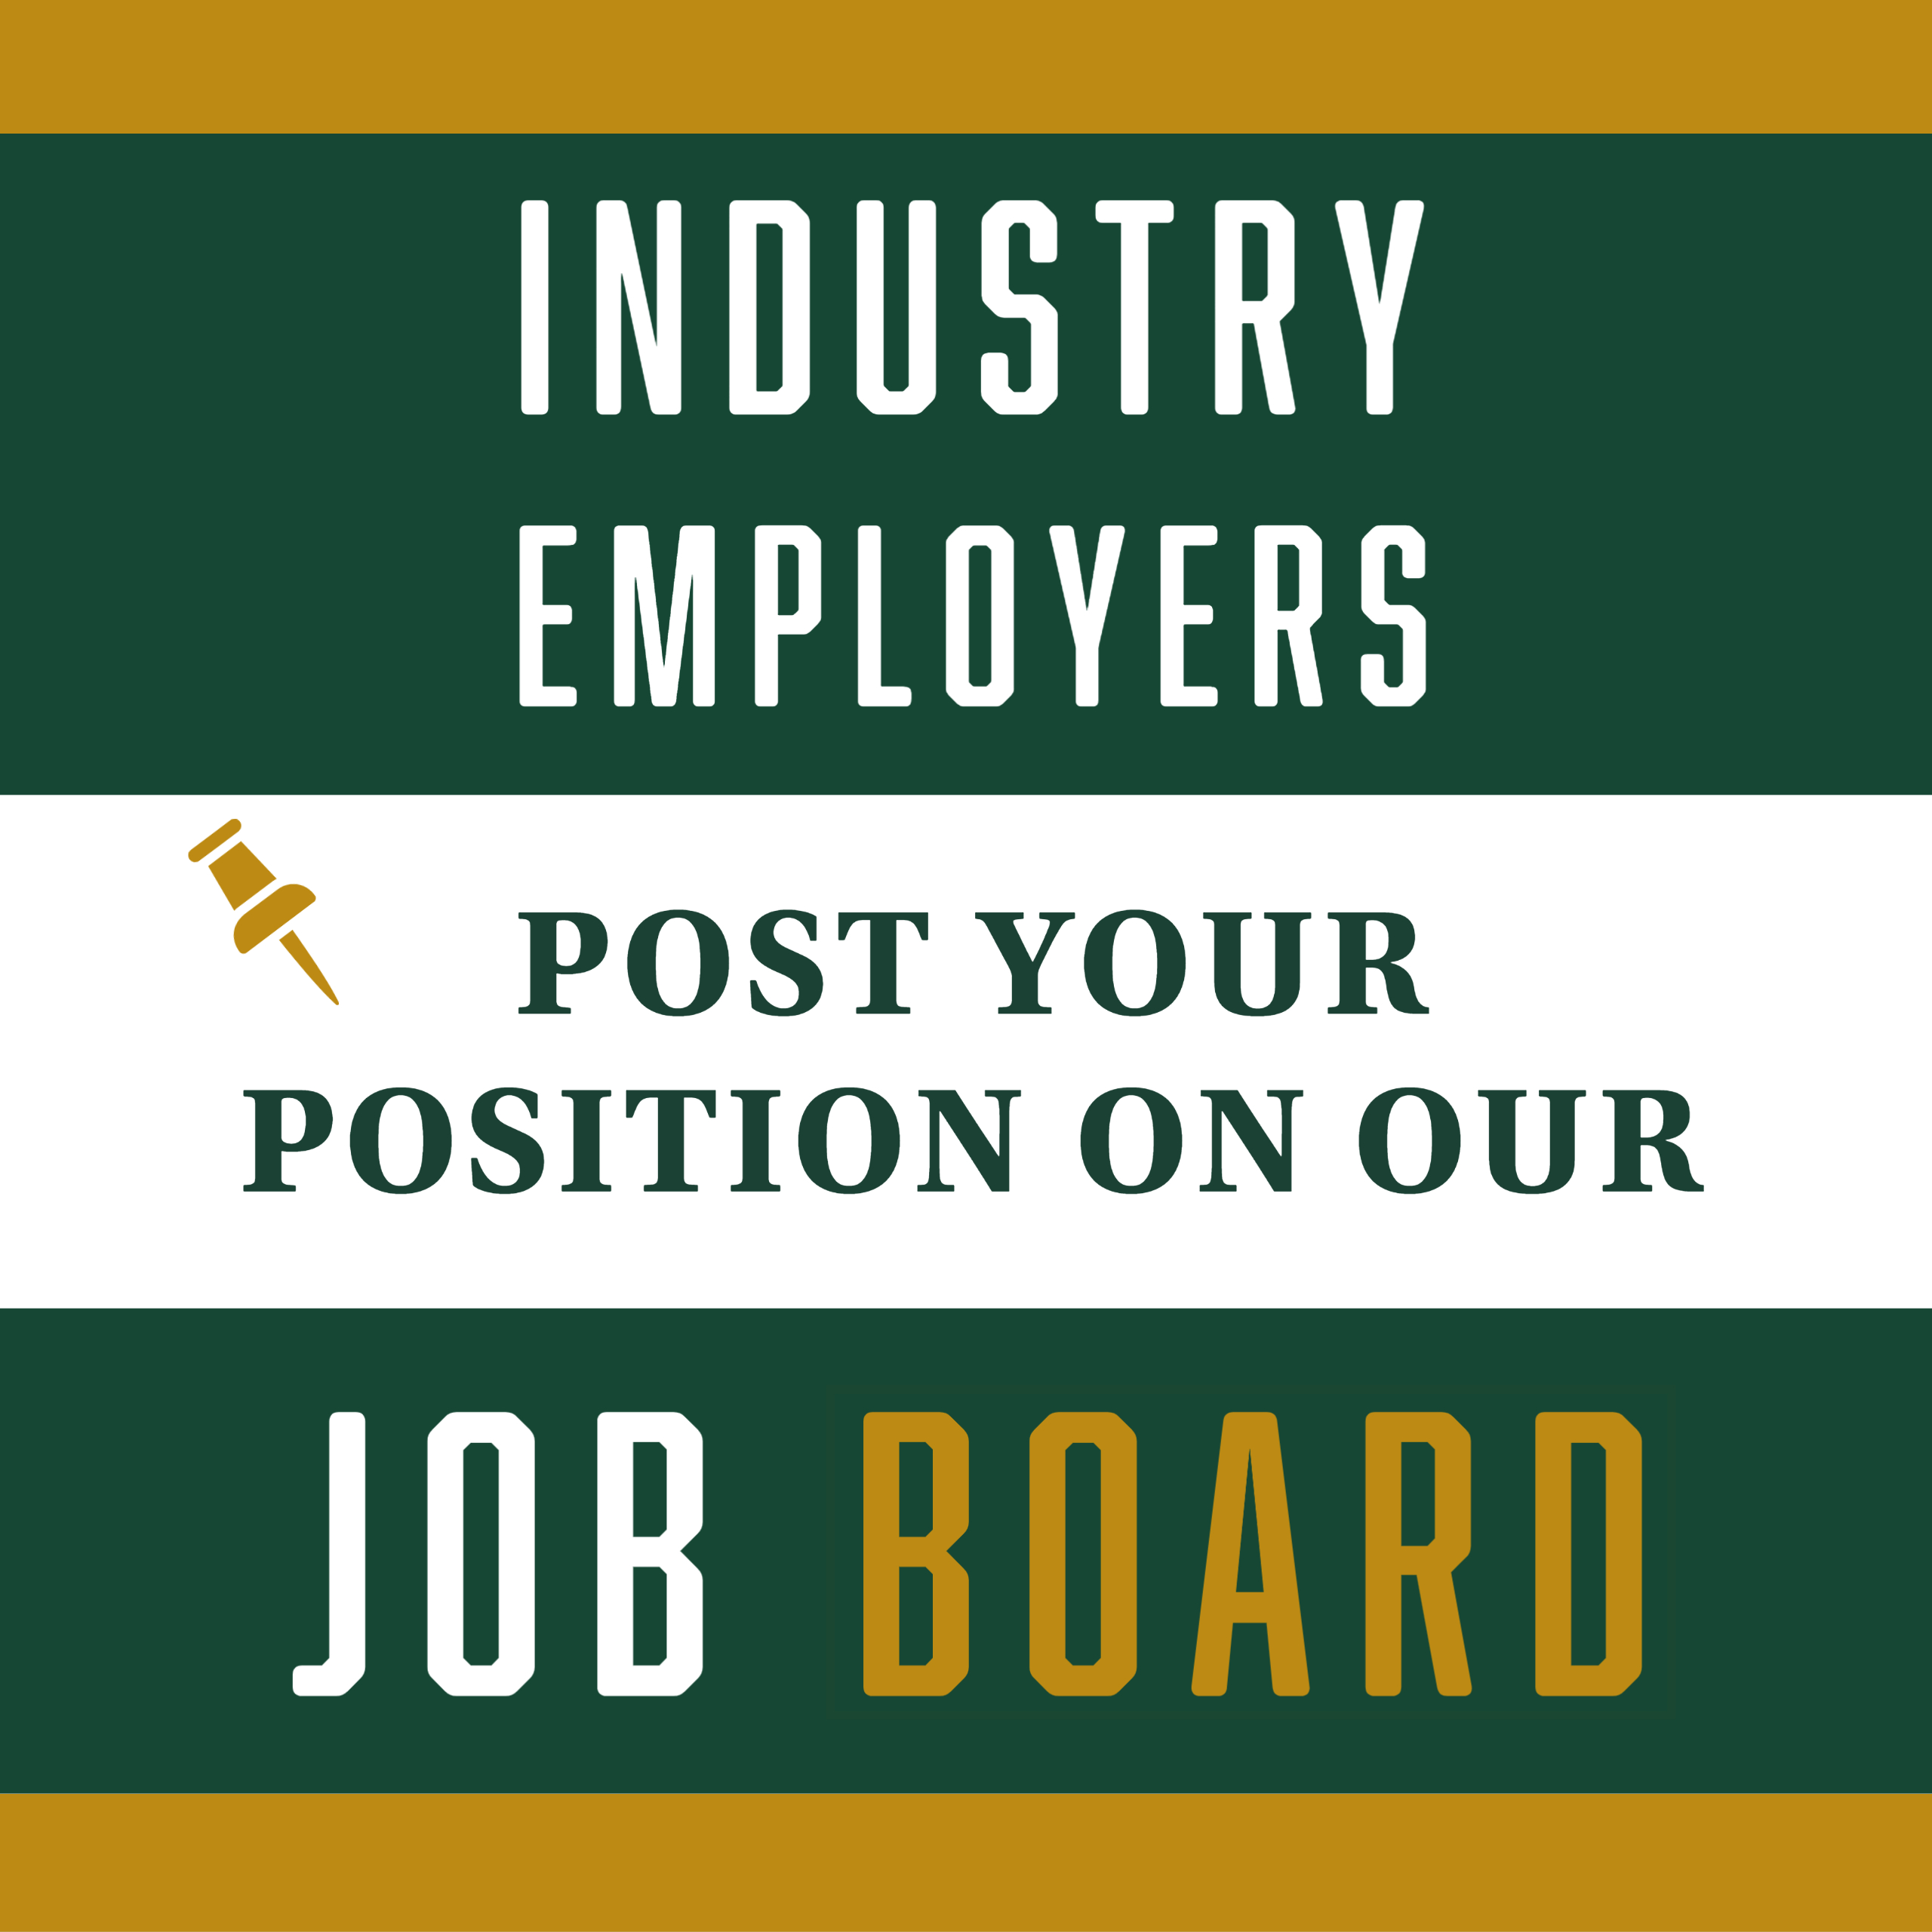 Post to Job Board